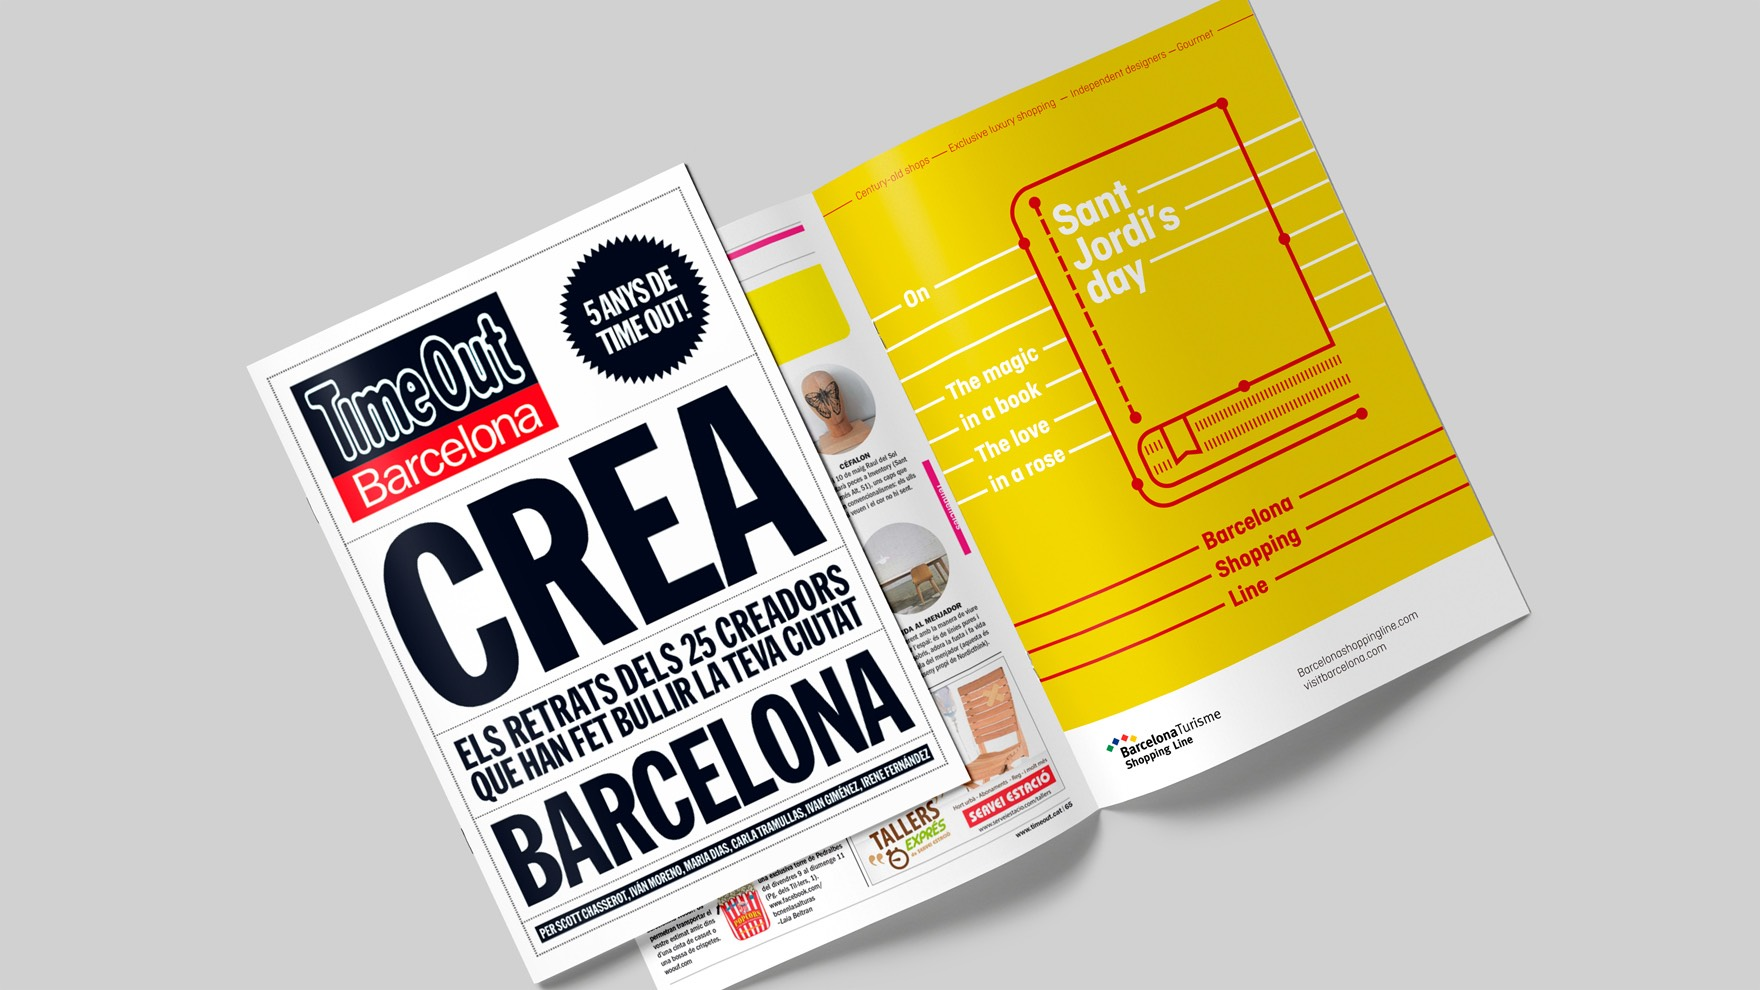 BARCELONA SHOPPING LINE / GRAPHIC DESIGN